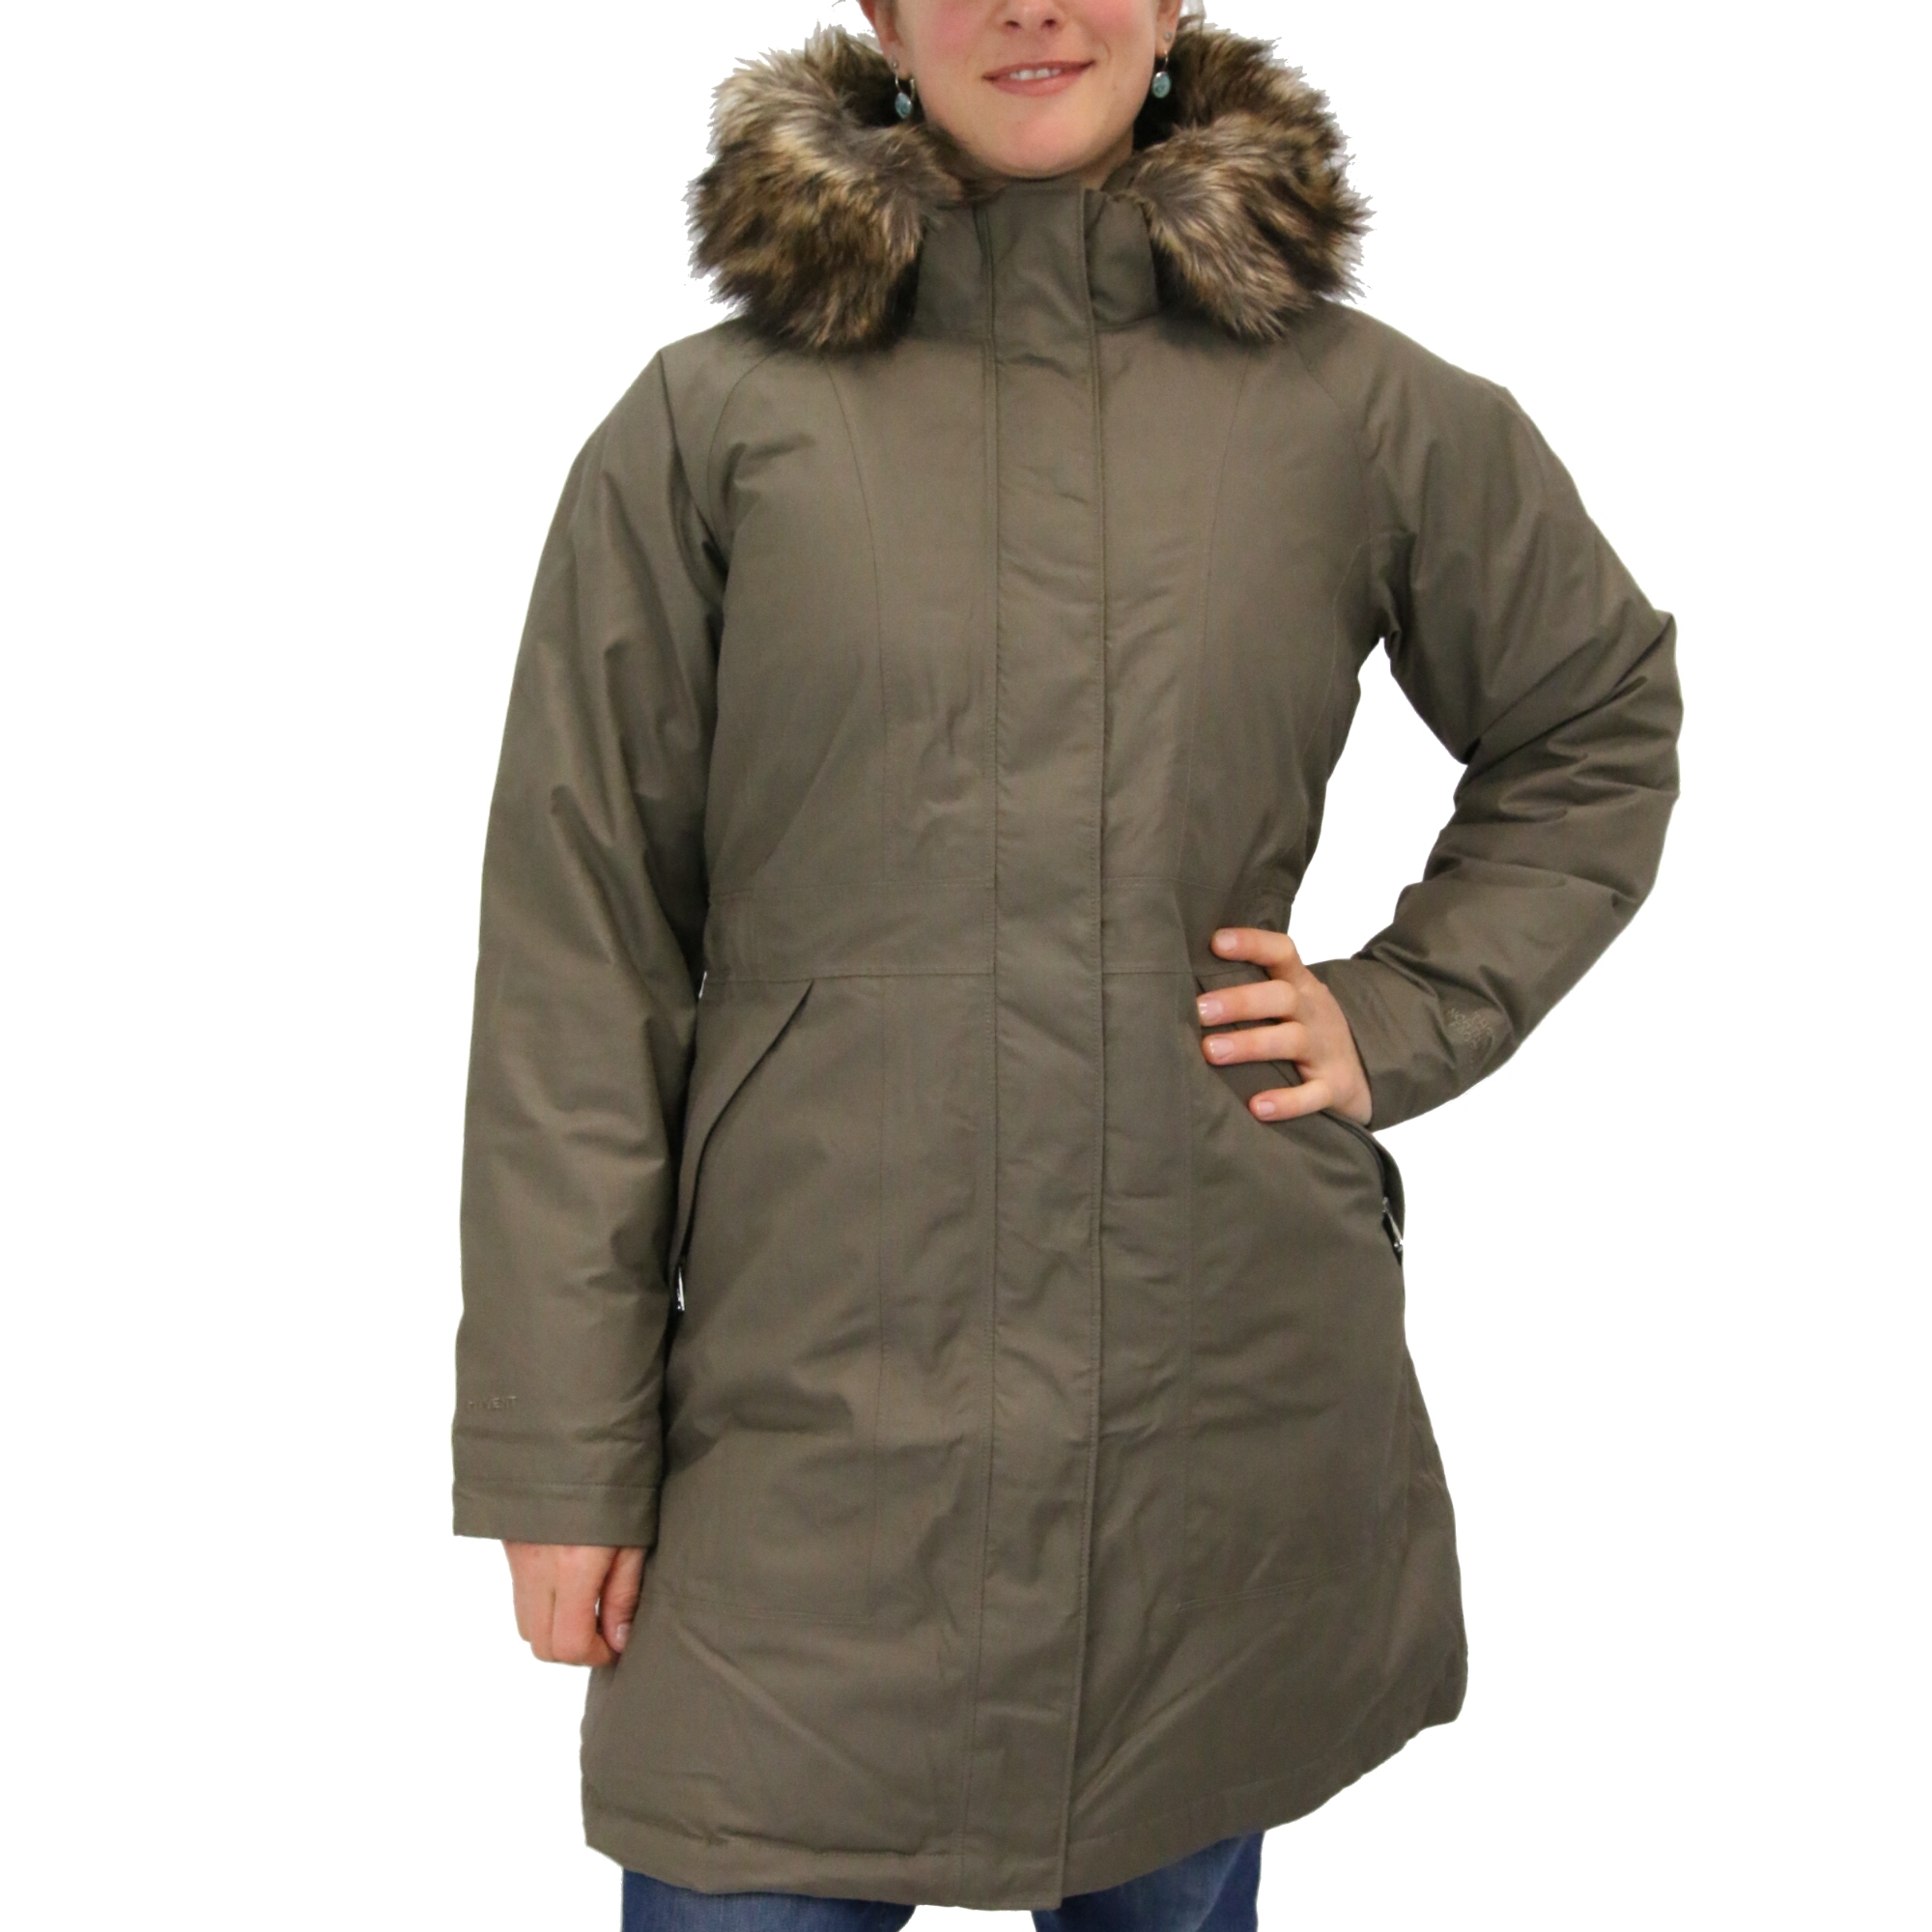 the north face arctic parka jacke mantel winterjacke daunenjacke 550 cuin damen ebay. Black Bedroom Furniture Sets. Home Design Ideas